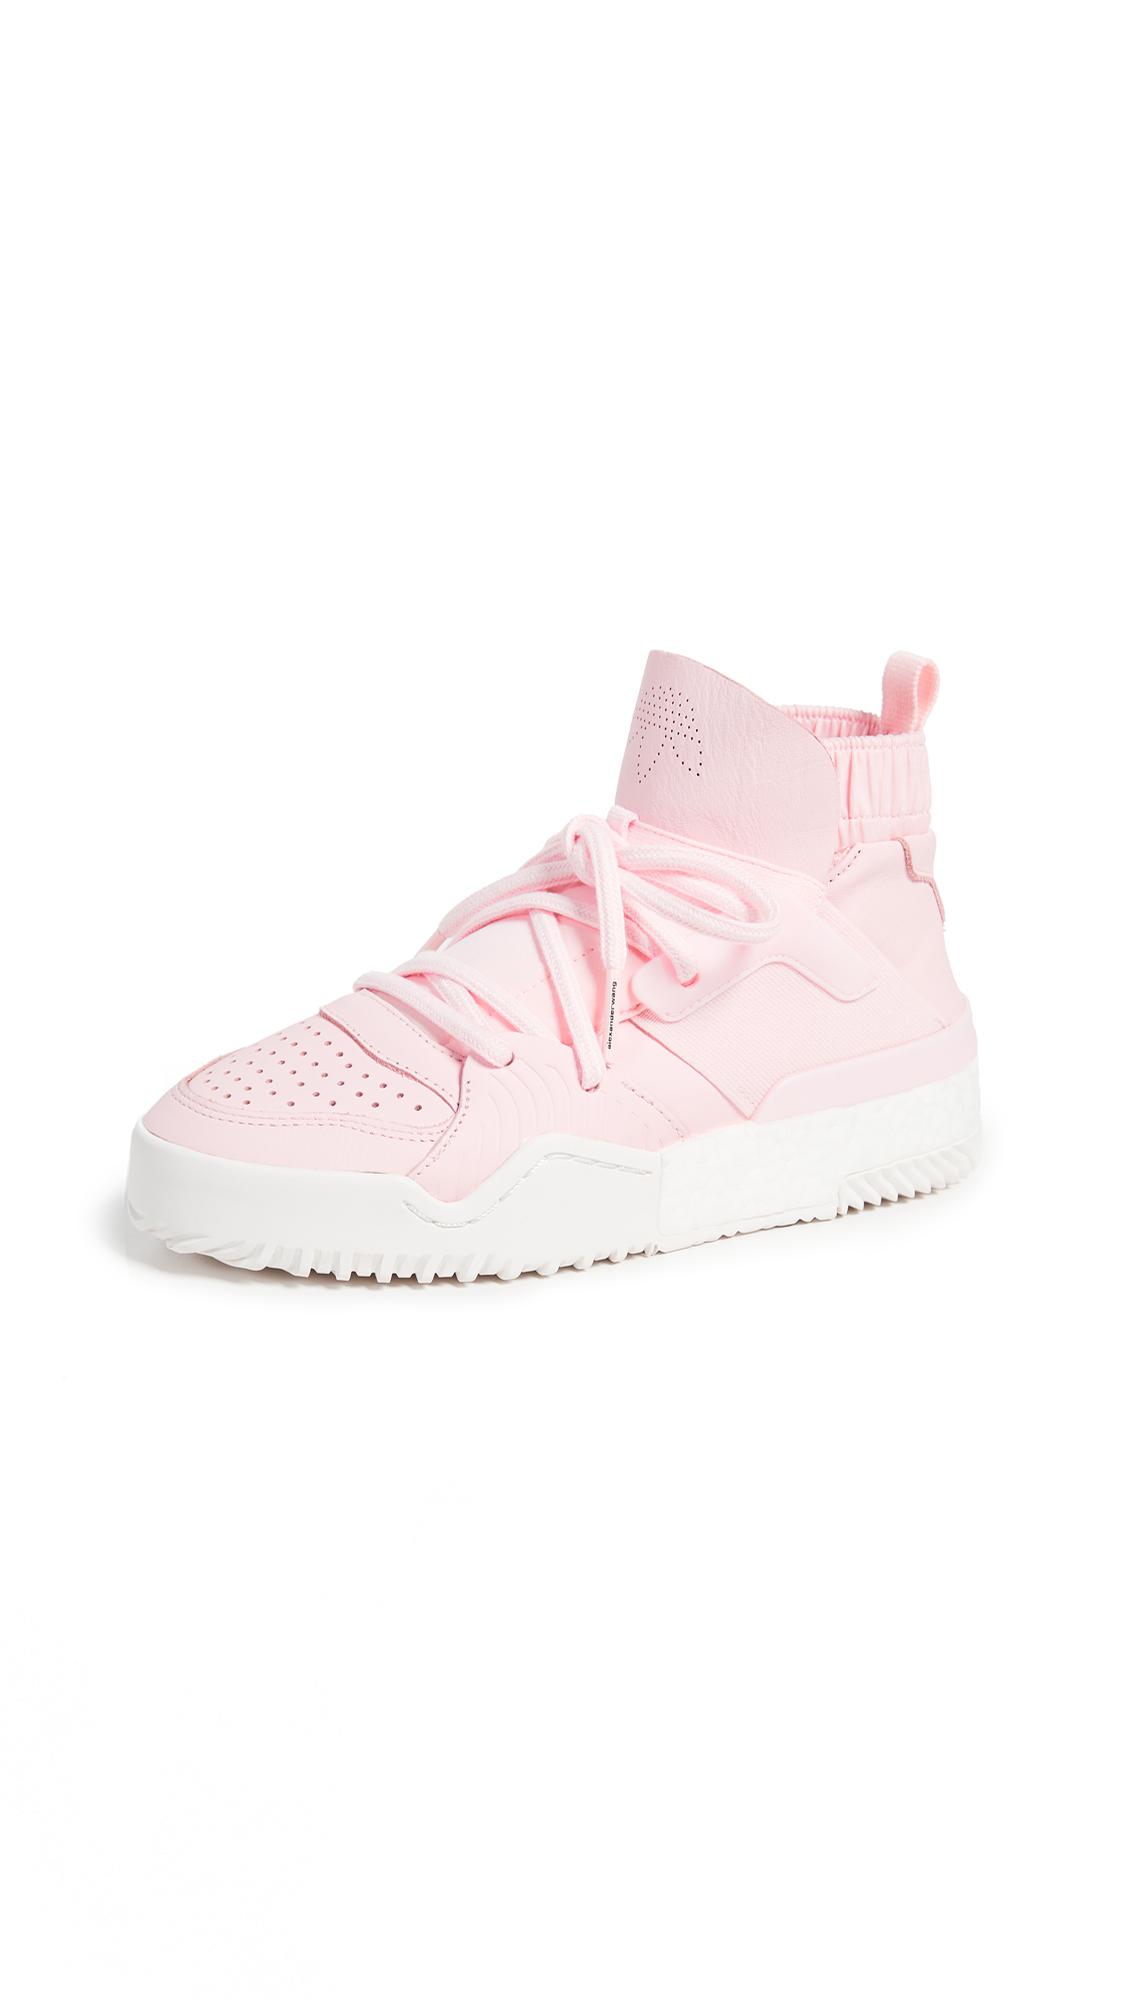 adidas Originals by Alexander Wang AW Bball Hi-Top Sneakers - Clear Pink/Core White